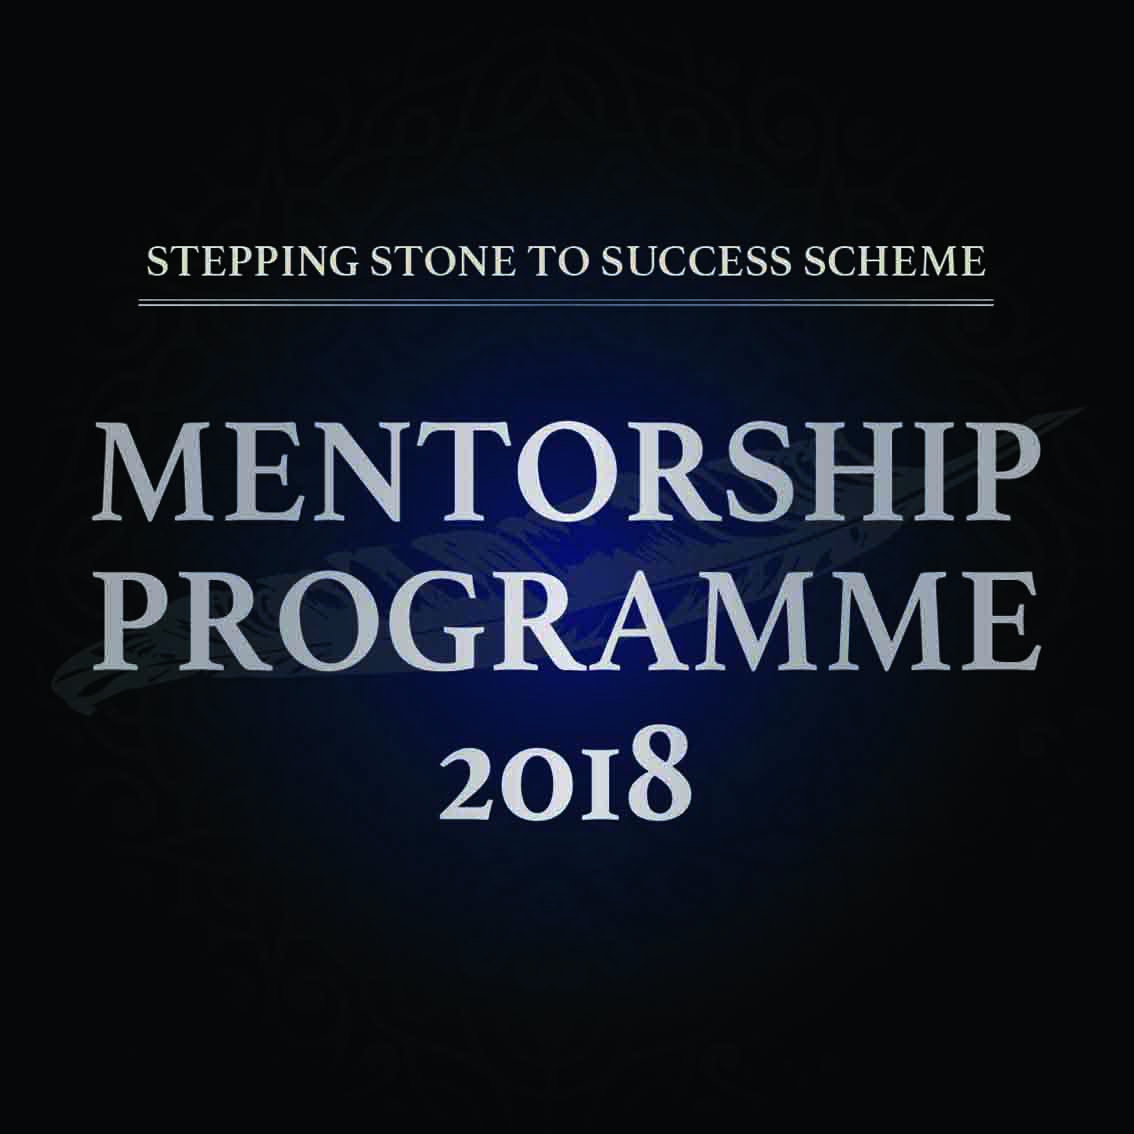 Mentorship Programme 2018 (Stepping Stone to Success Scheme 2018)